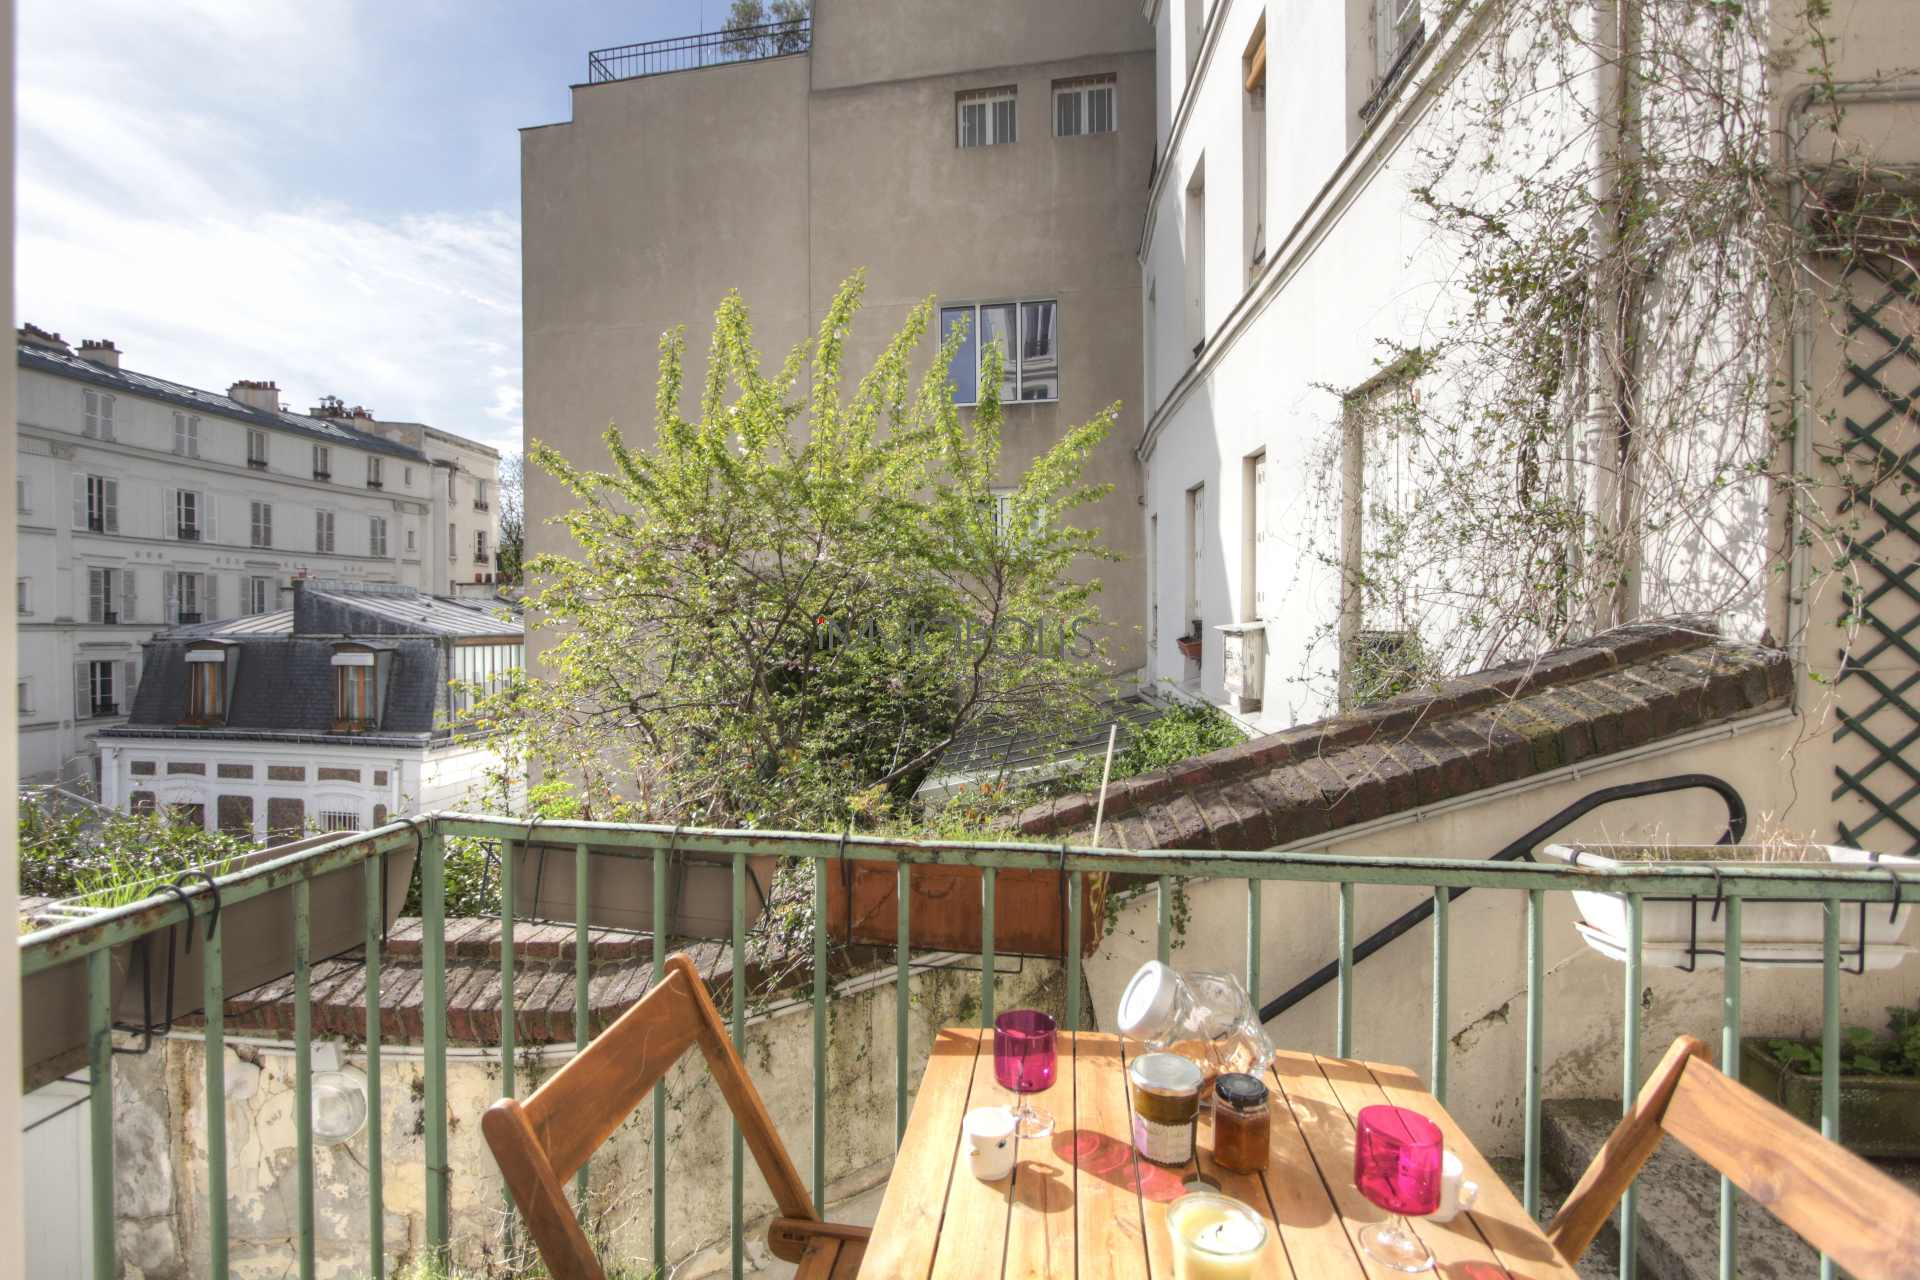 Exceptional in Montmartre (rue Gabrielle): refurbished open space, sumptuous services, with balcony and open view! 2